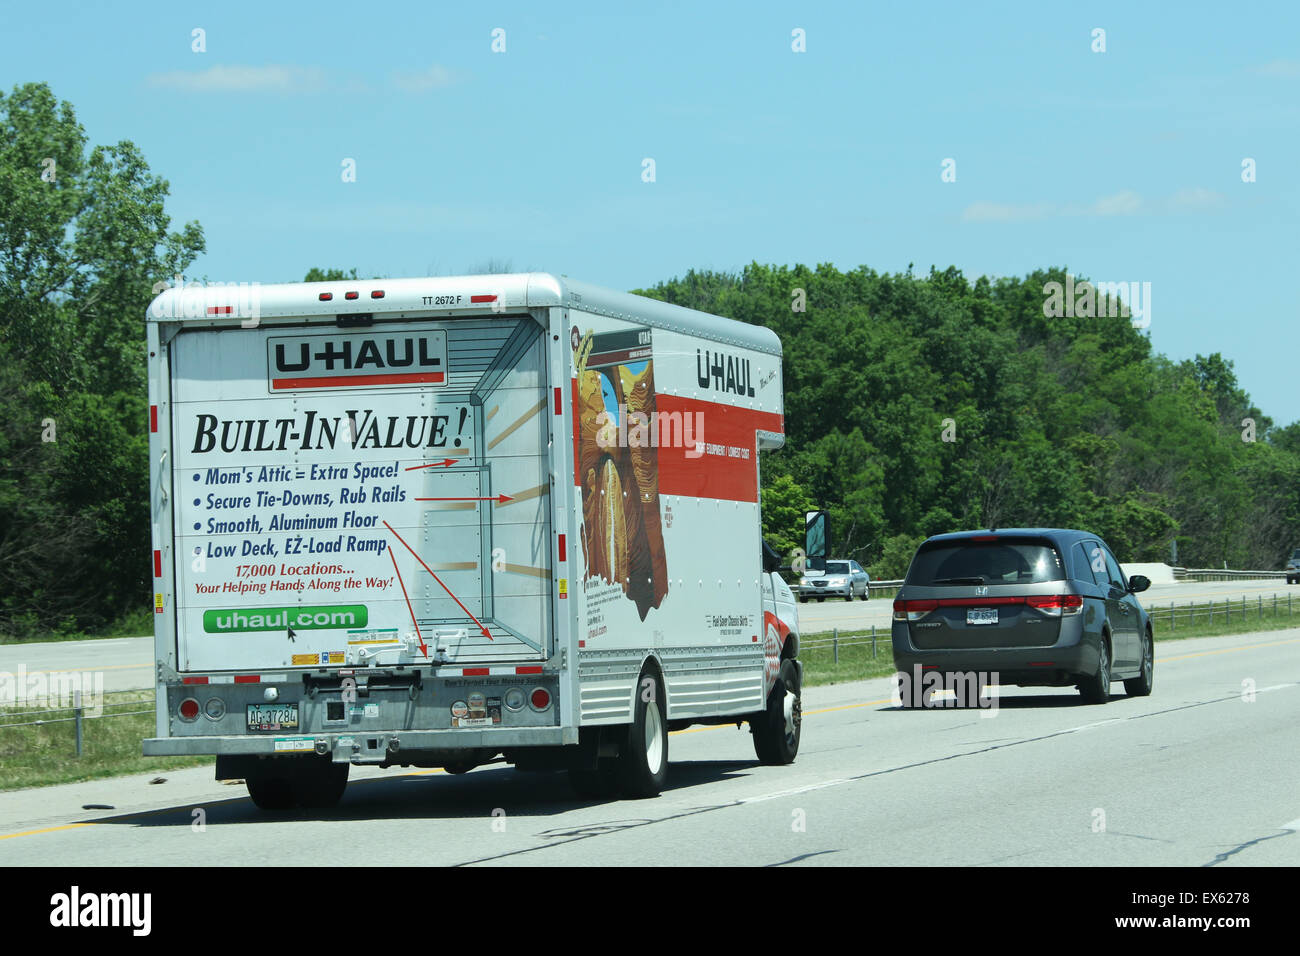 U-Haul moving truck on the highway. - Stock Image